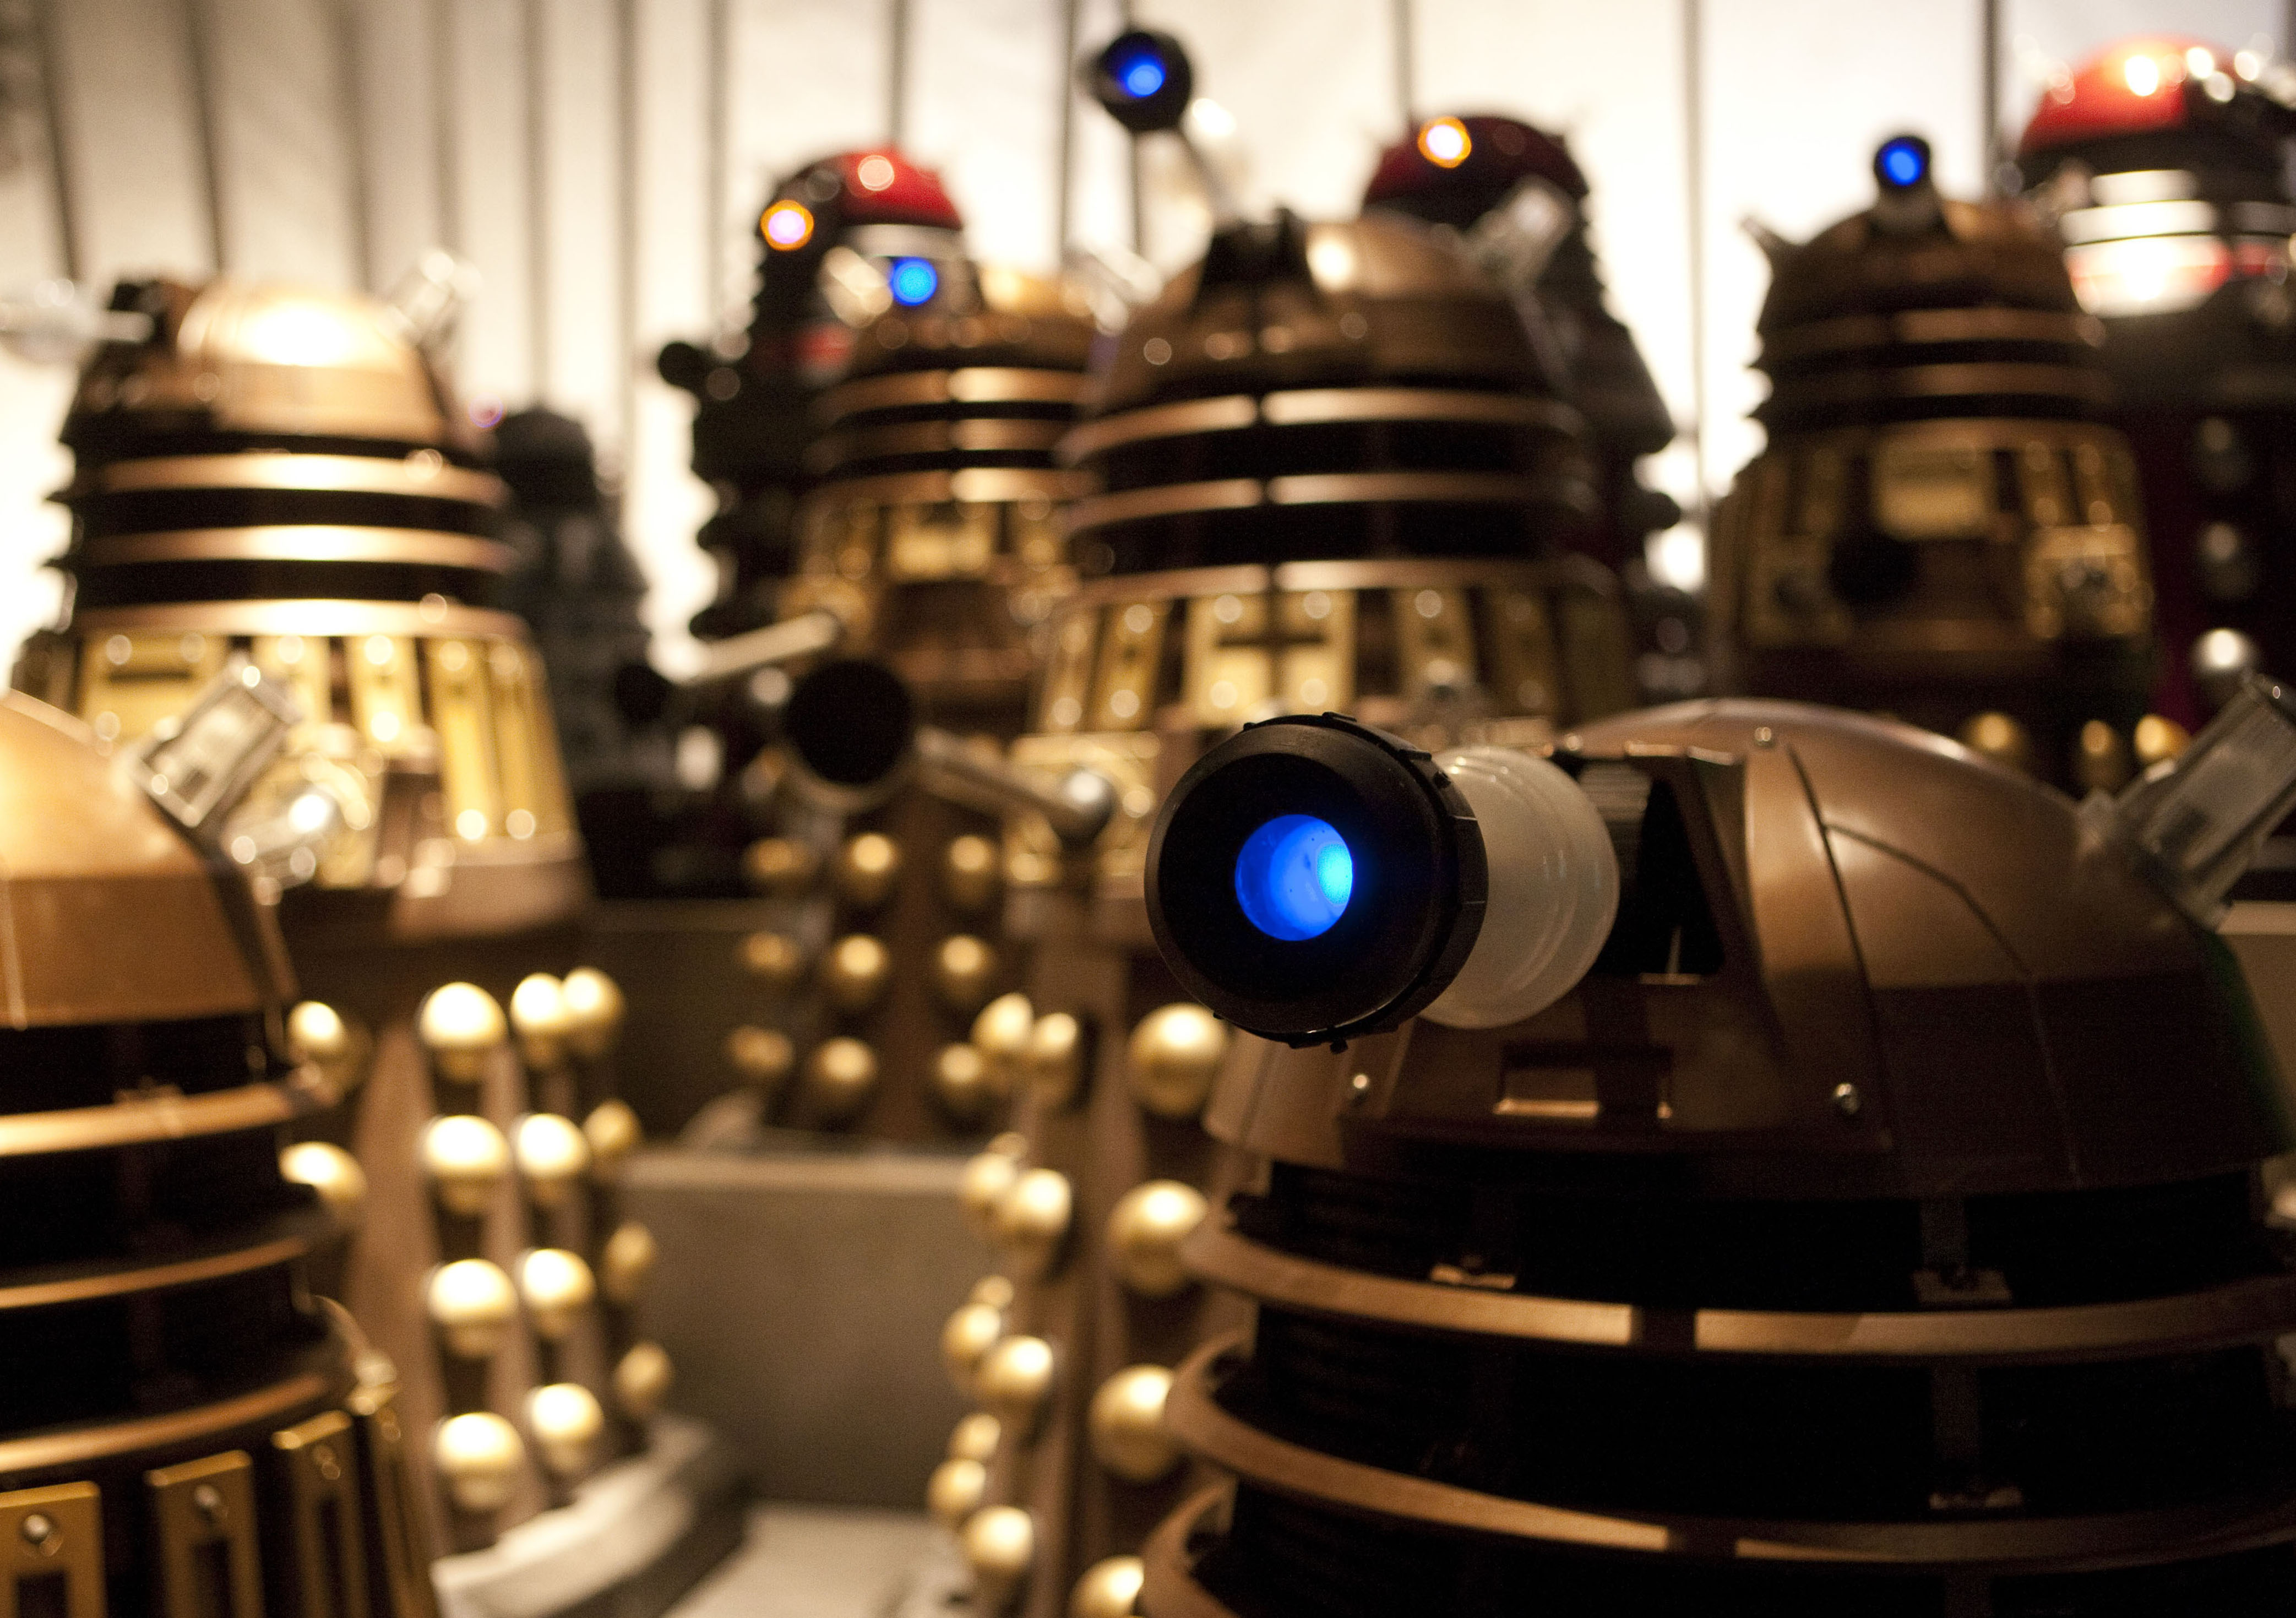 Doctor who tv series 7 story 226 asylum of the daleks - Doctor who dalek pics ...